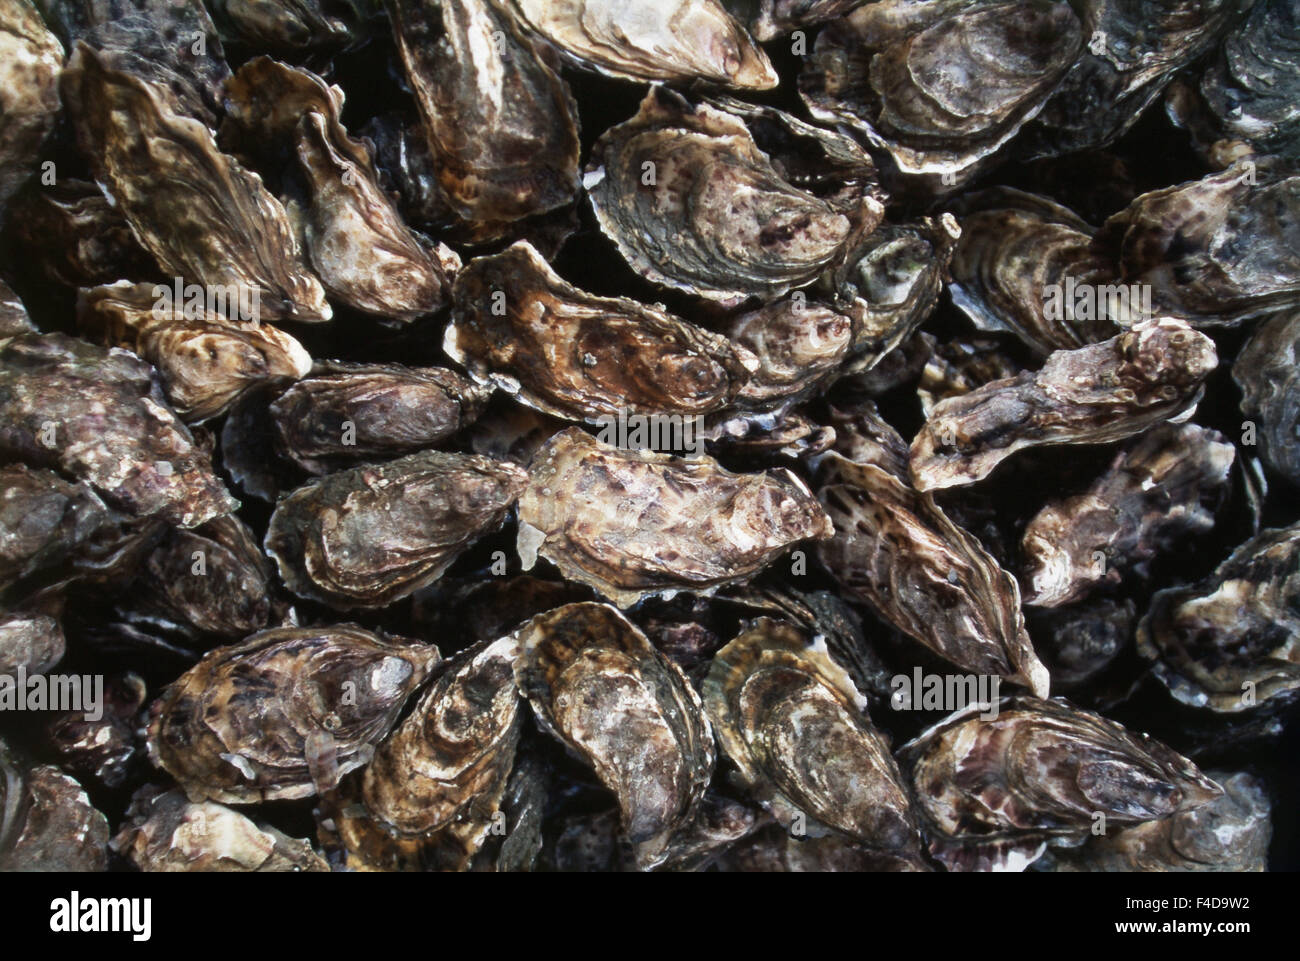 France, Brittany, Iile-et-Vilaine, Cancale, Cancale Oysters 'Fines de Claire'. (Large format sizes available) - Stock Image